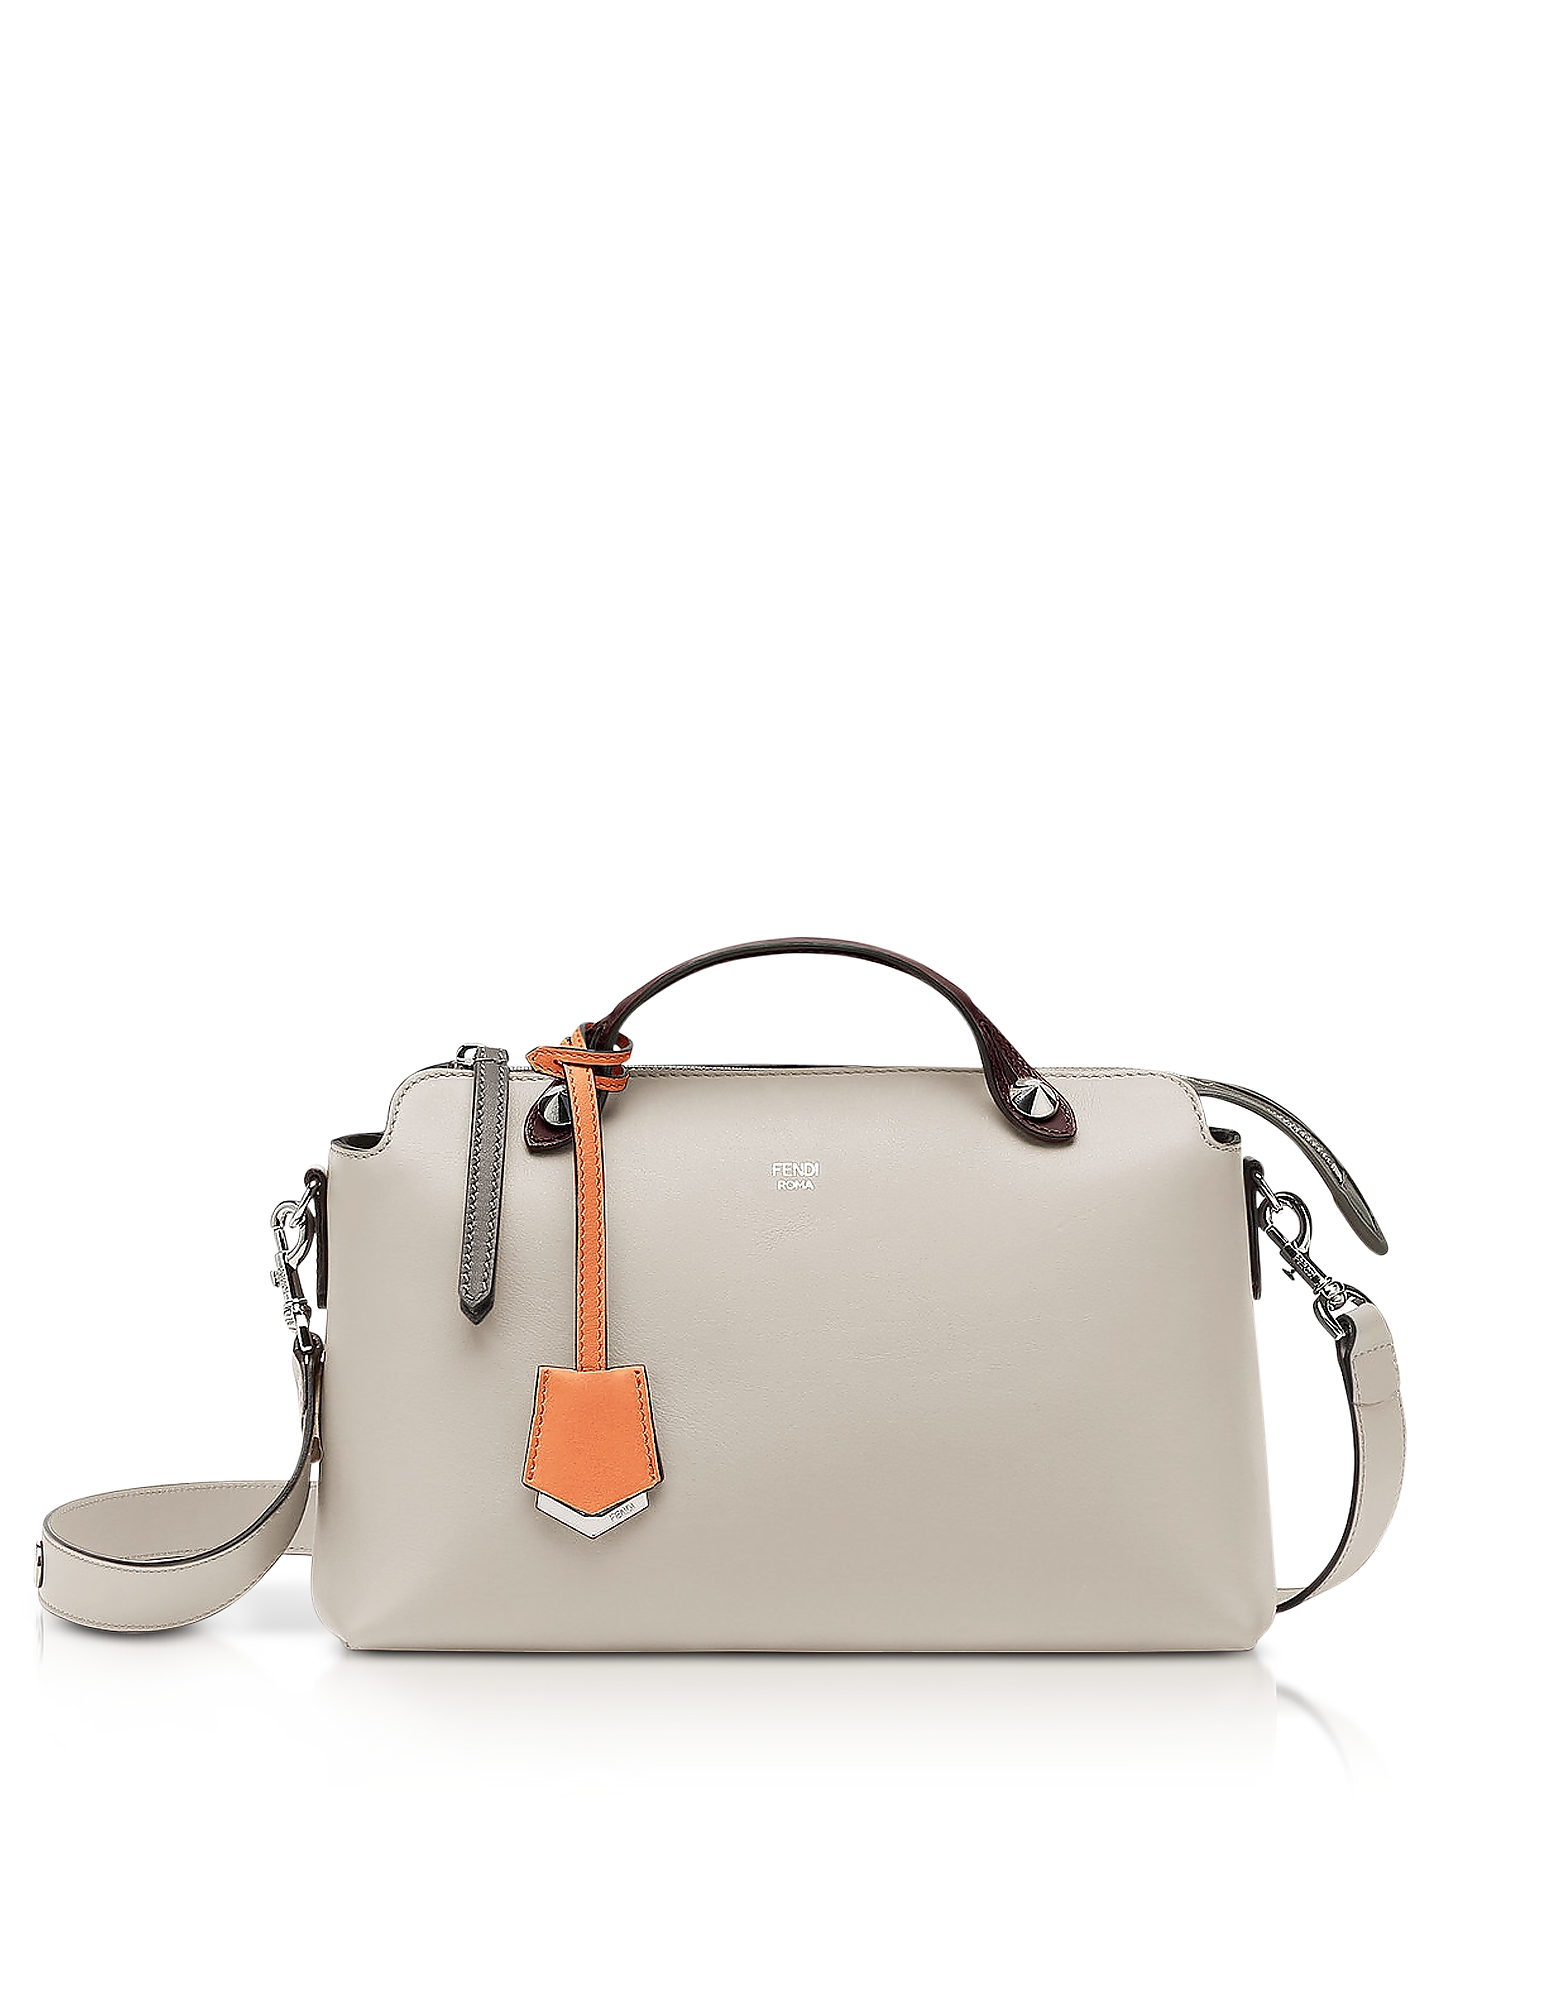 Fendi Handbags, By The Way Regular Dust Gray Leather Satchel Bag